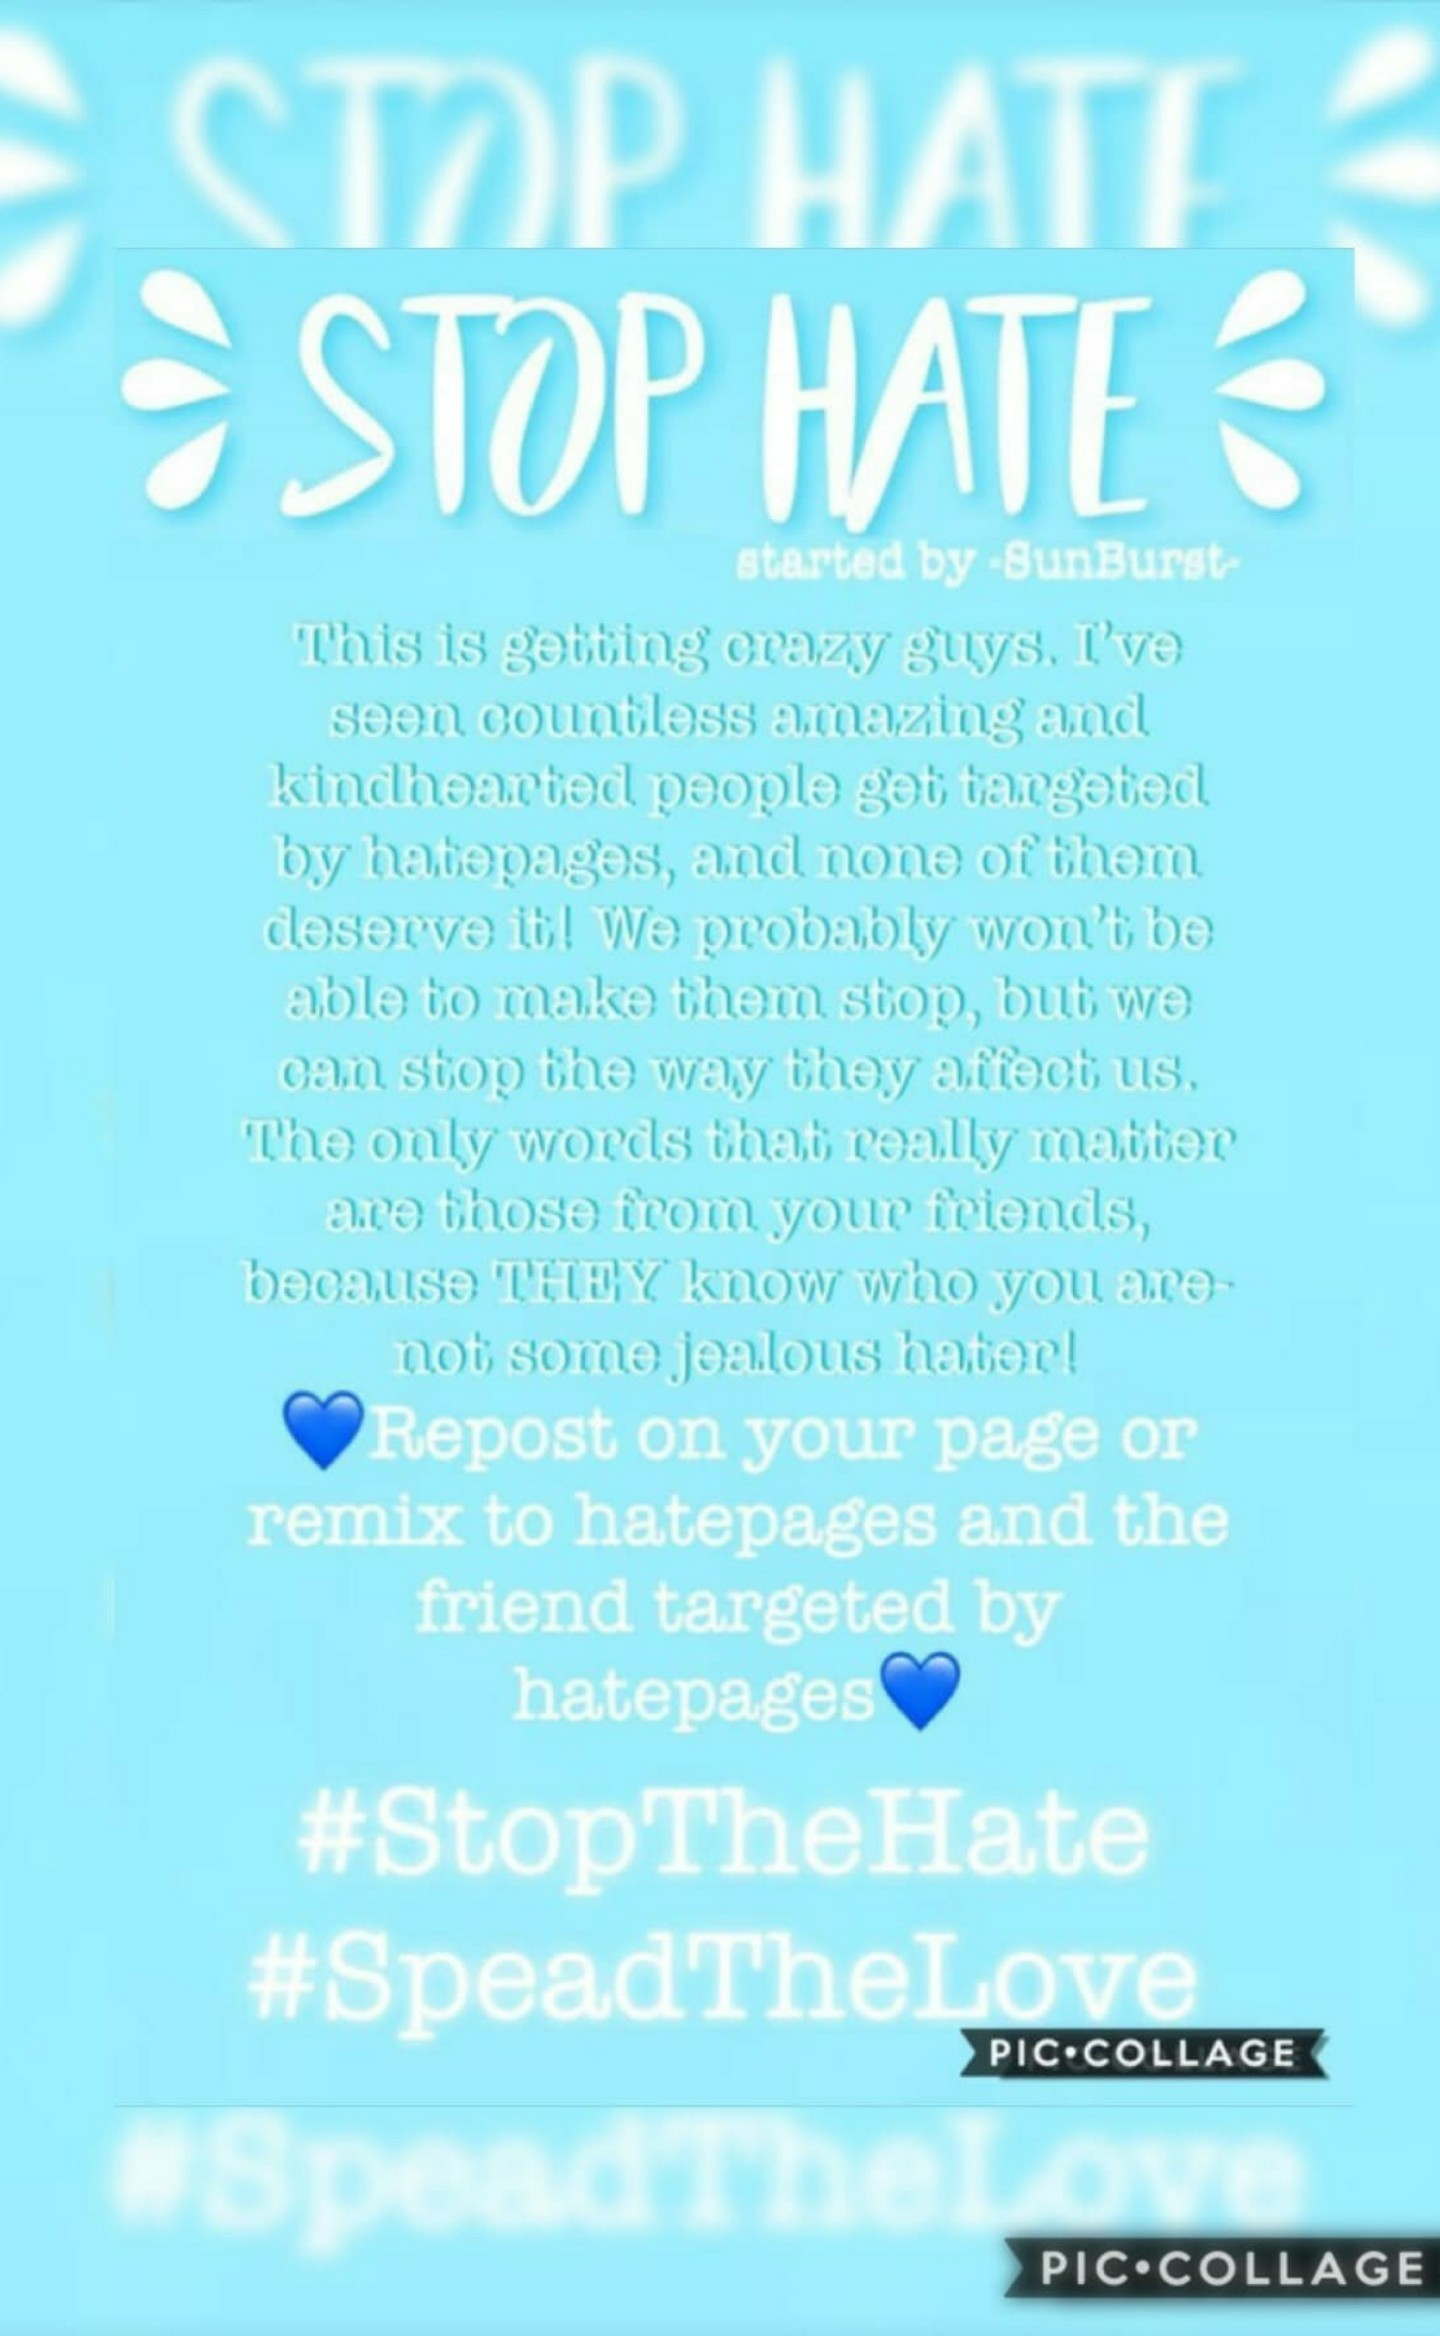 💙STOP THE HATE💙